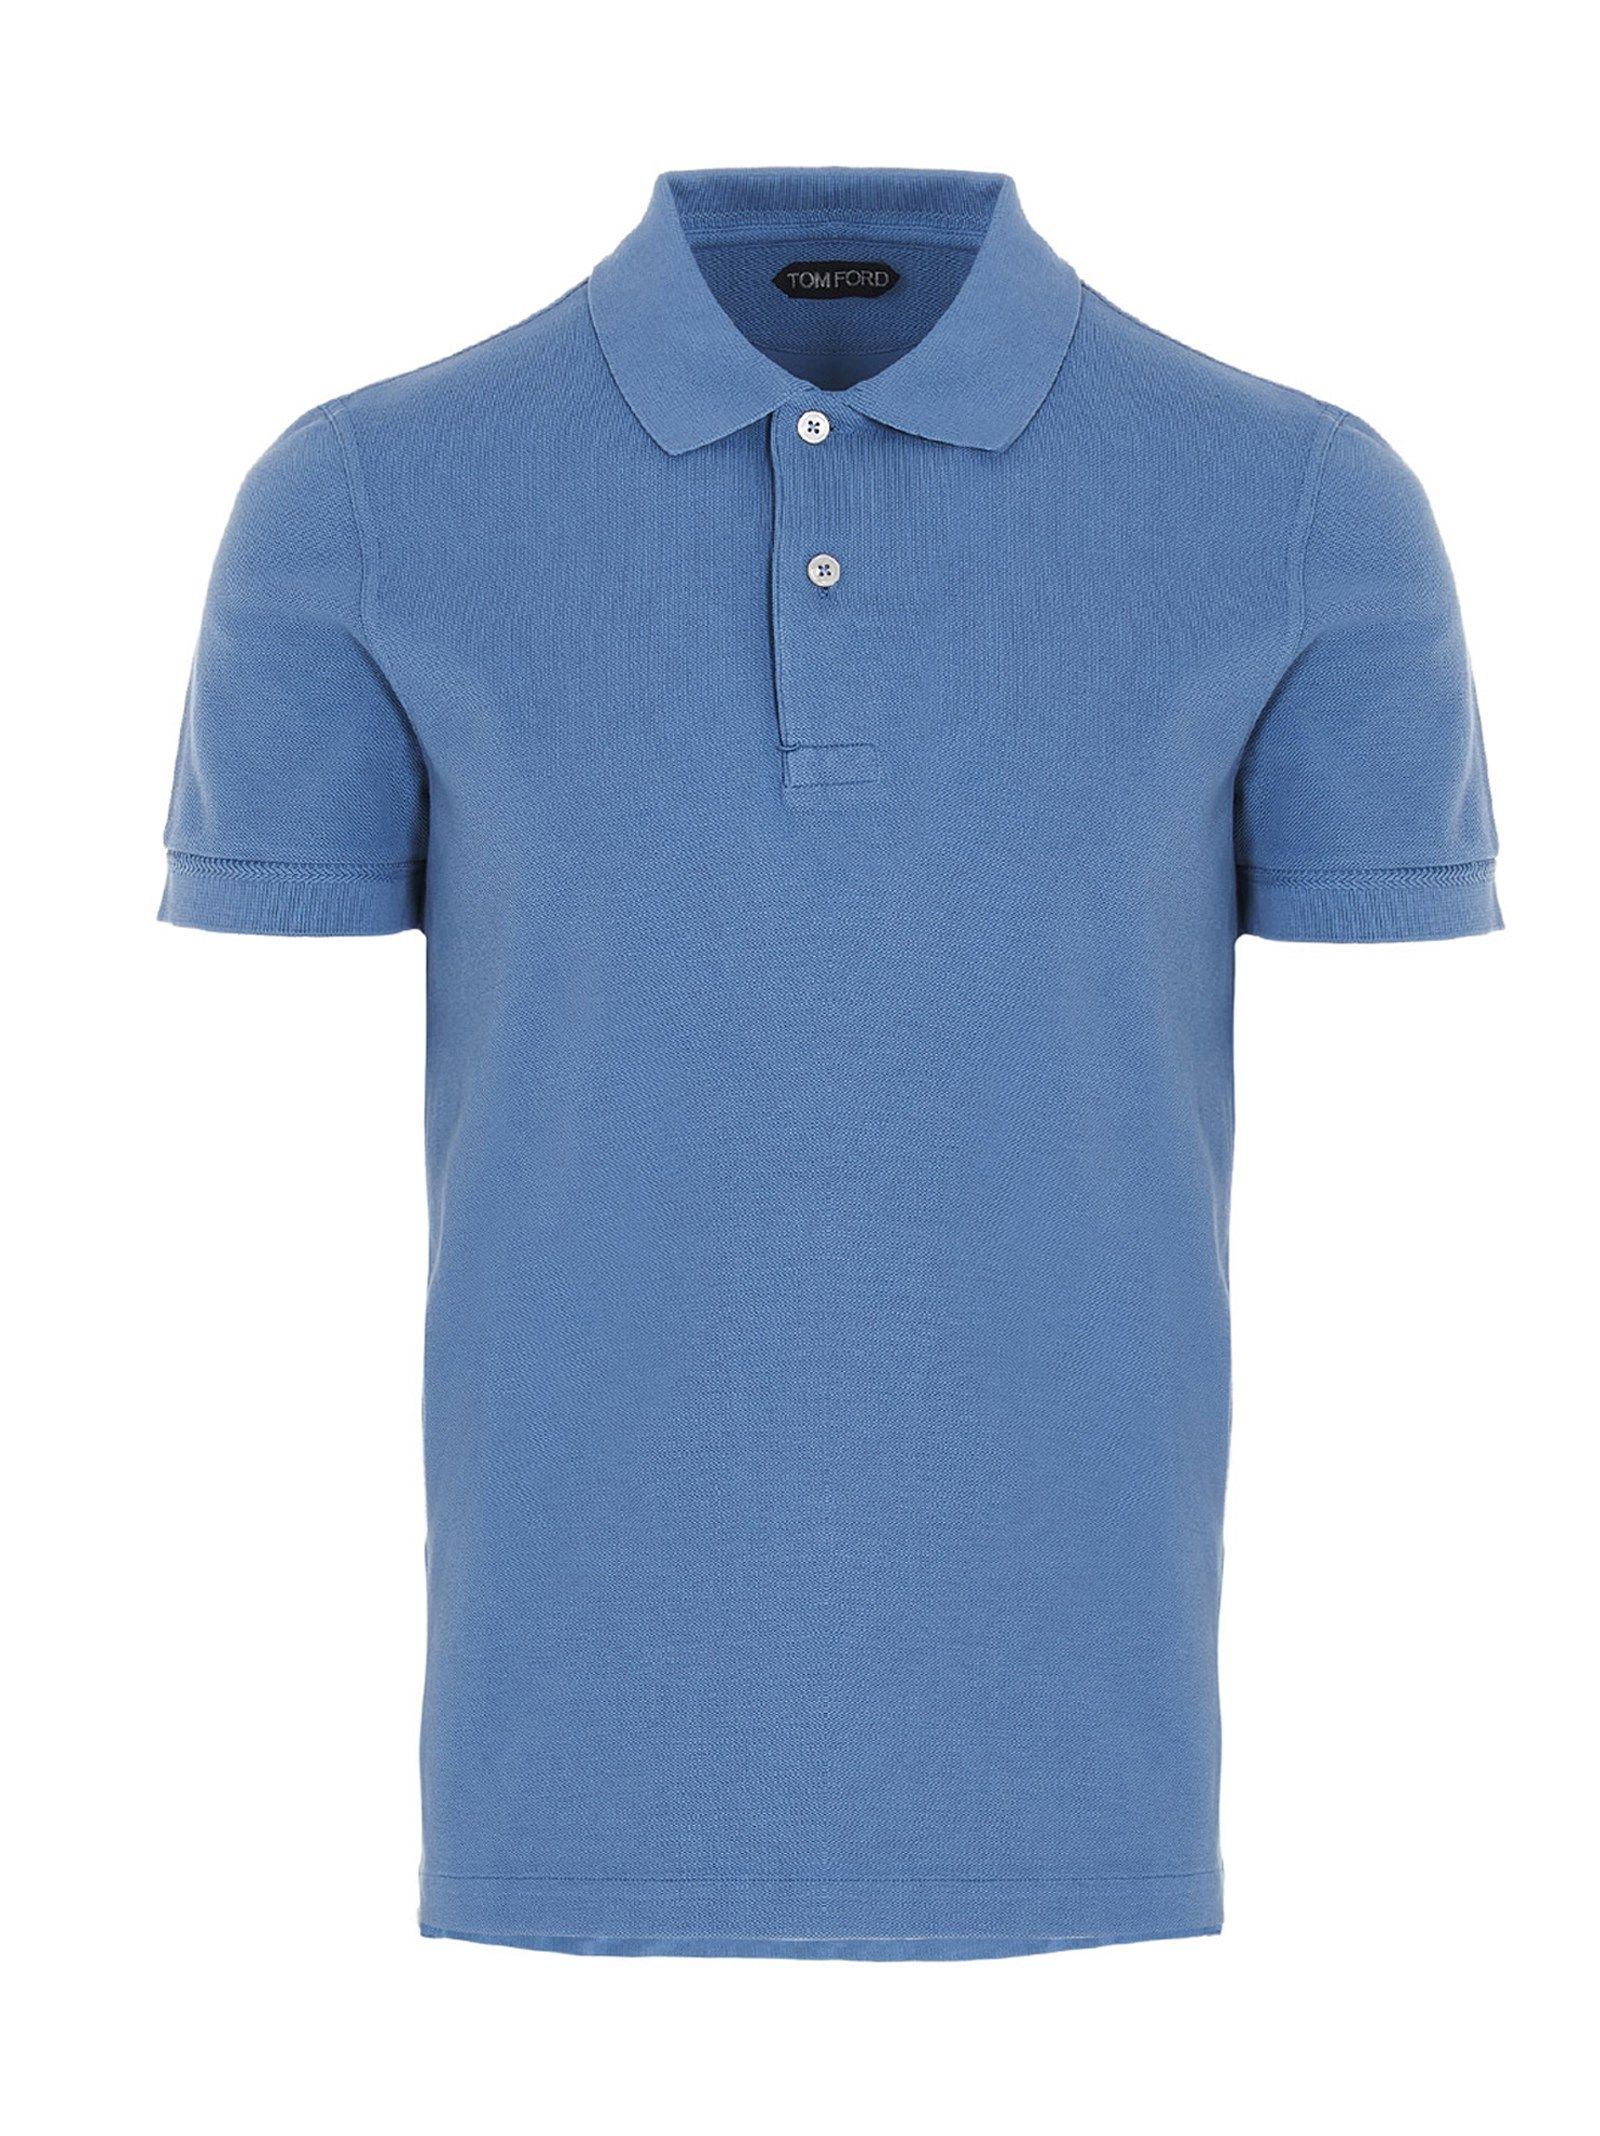 Tom Ford TOM FORD MEN'S LIGHT BLUE COTTON POLO SHIRT